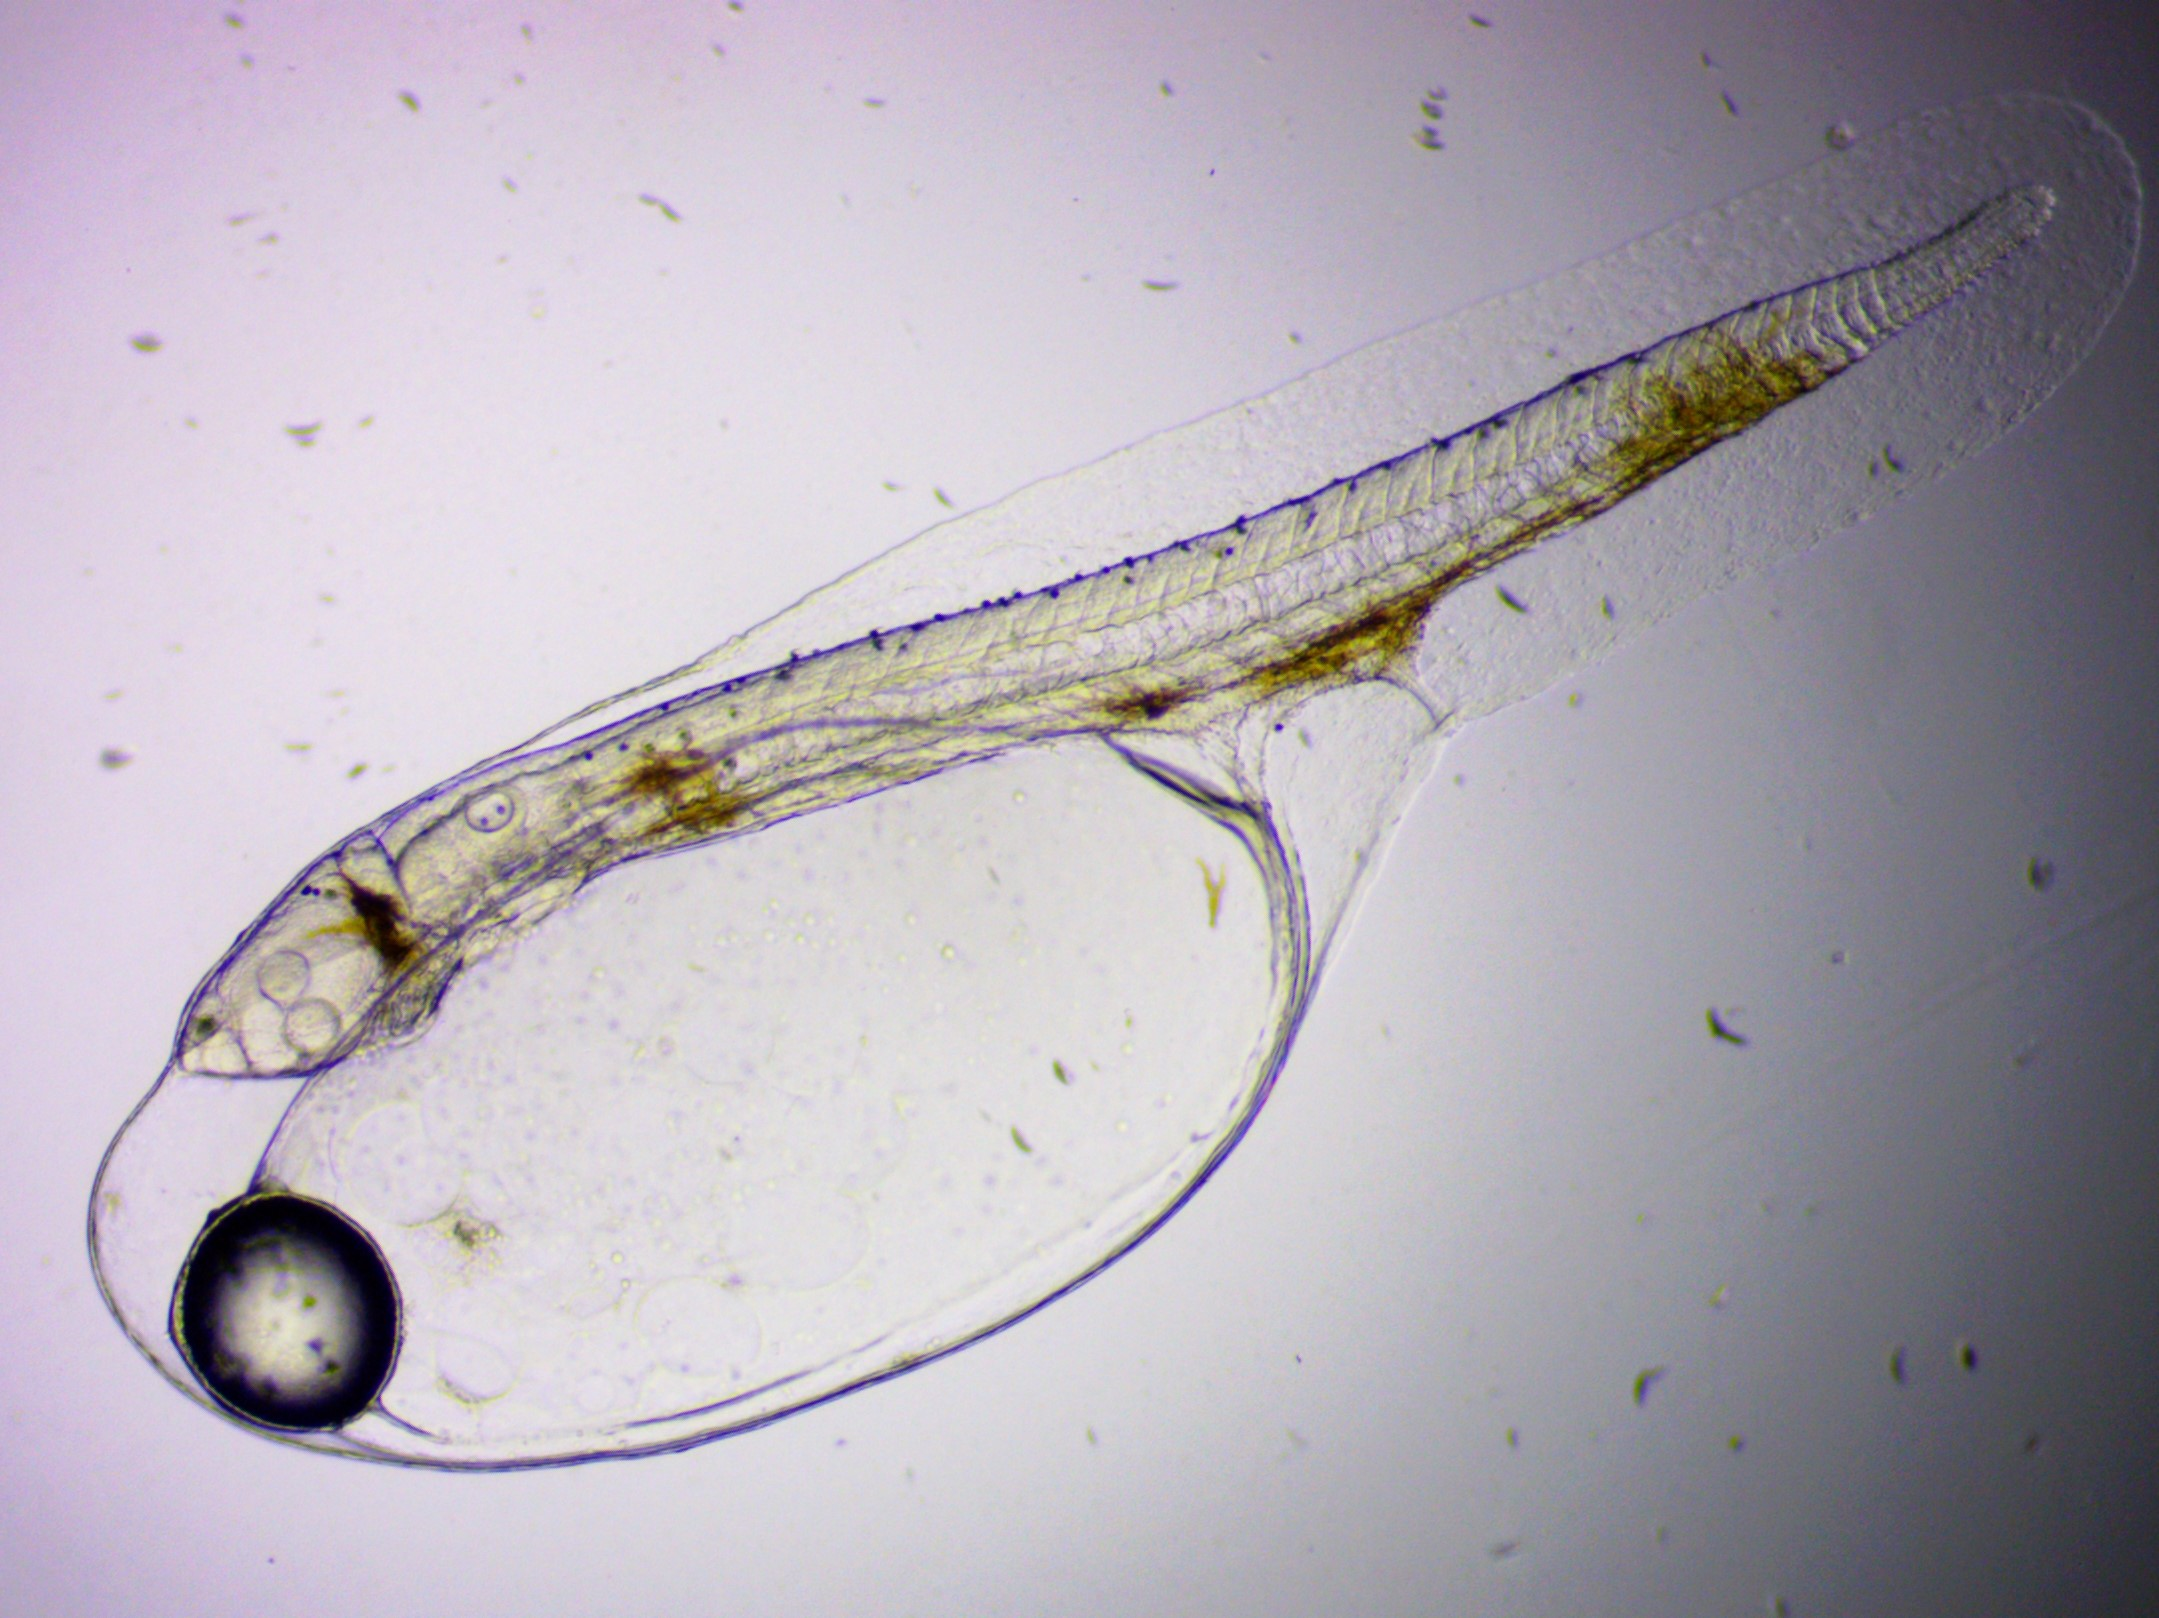 21.26 1 Larvae no measurements.jpg